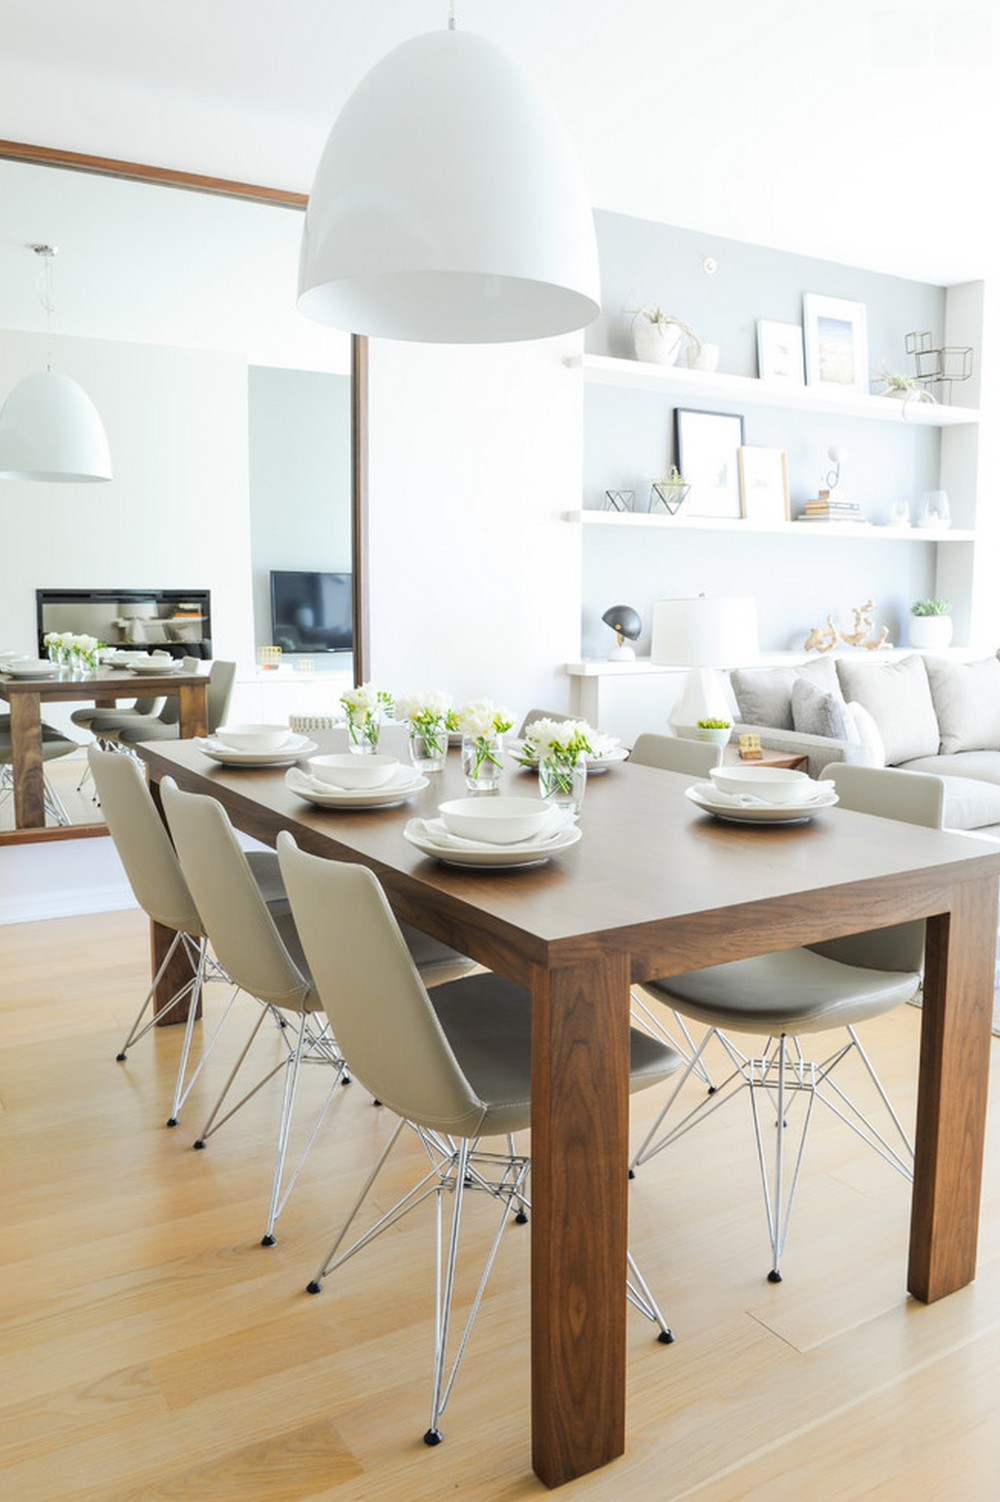 gray Gray and Wood: A Match Made in Design Heaven for your Dining Room 73267543b6b14007058bf12025cc65f8